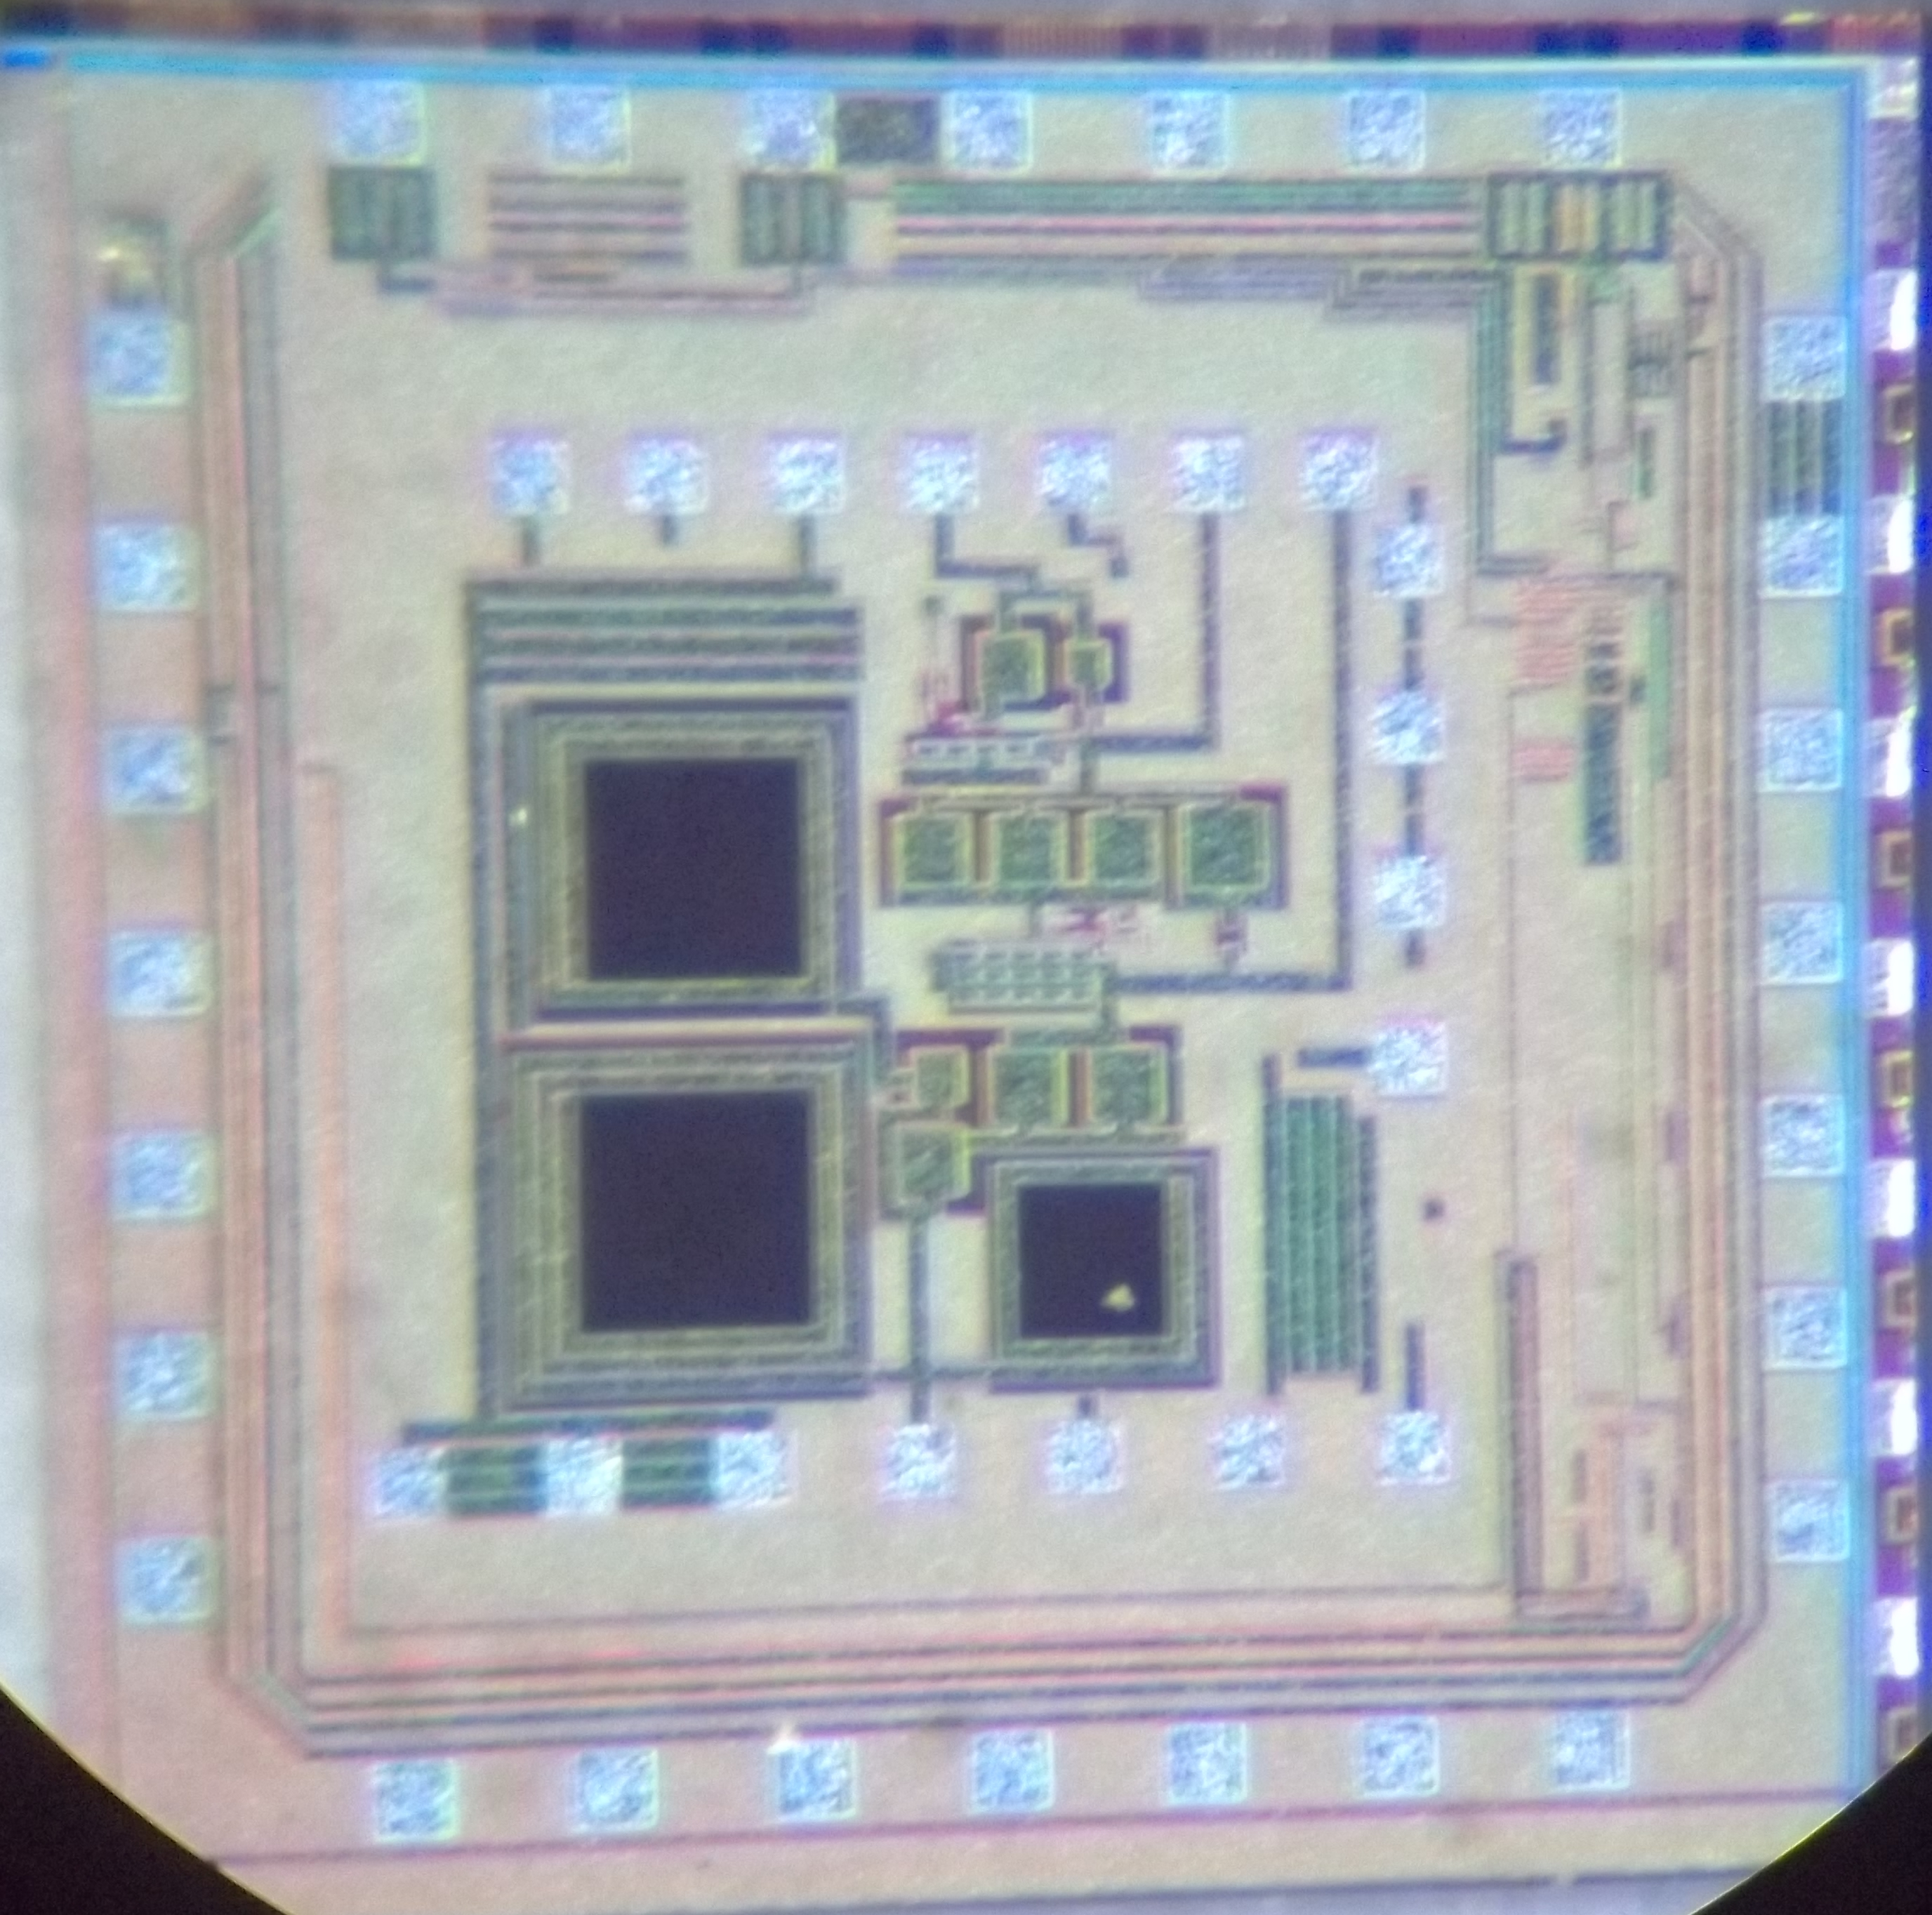 Iit Delhi Electrical Engineering Integrated Electronics And Jigmod Electronic Circuit Building System Electronicslab Chip Photo